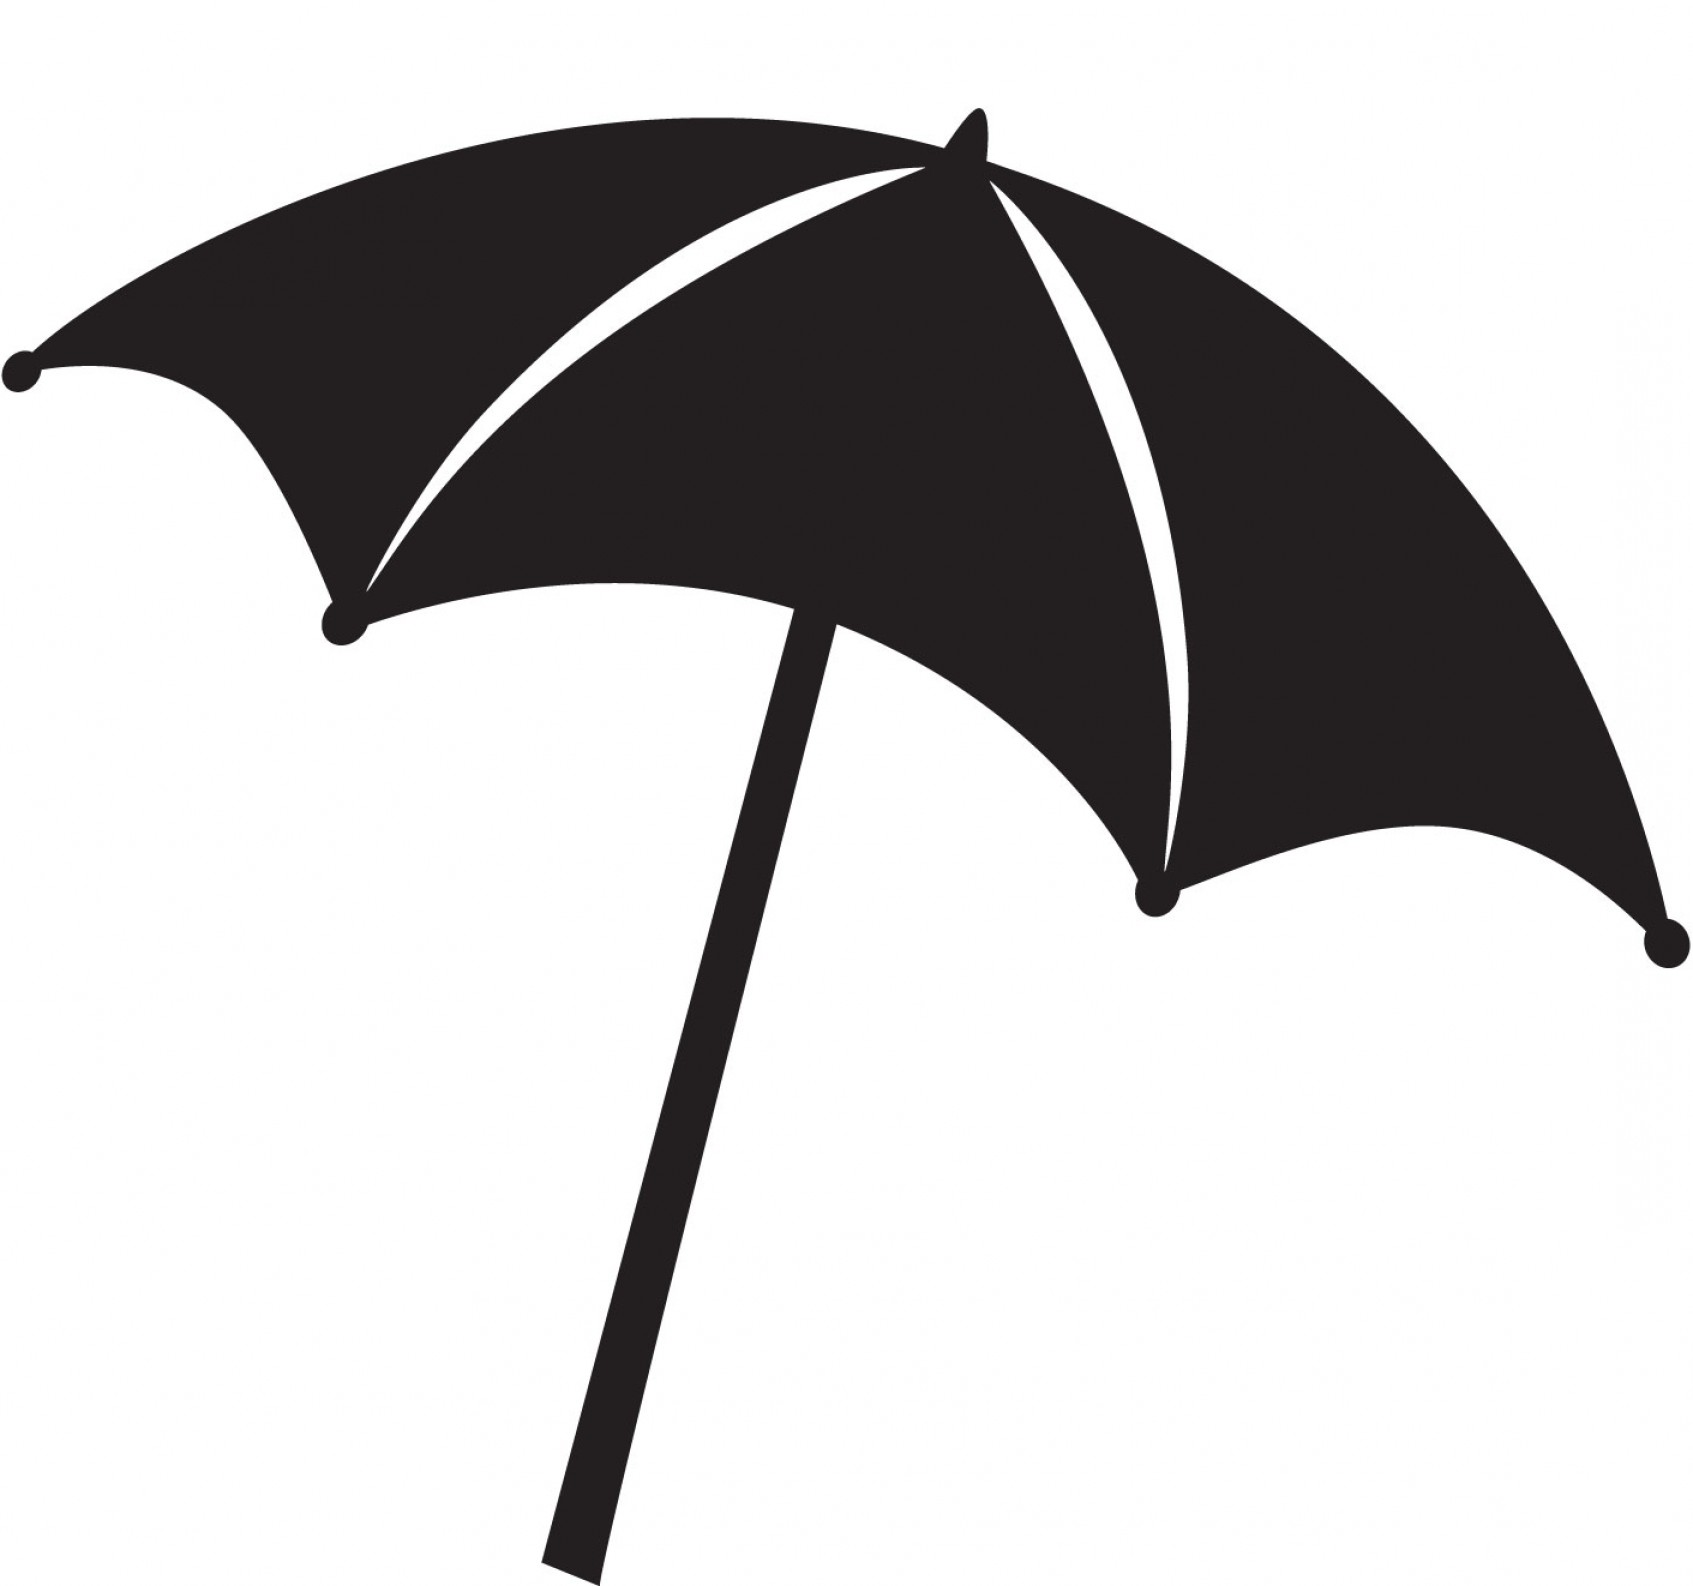 Beach umbrella clipart clip royalty free stock Beach Umbrella Clipart Black And White | SOIDERGI clip royalty free stock